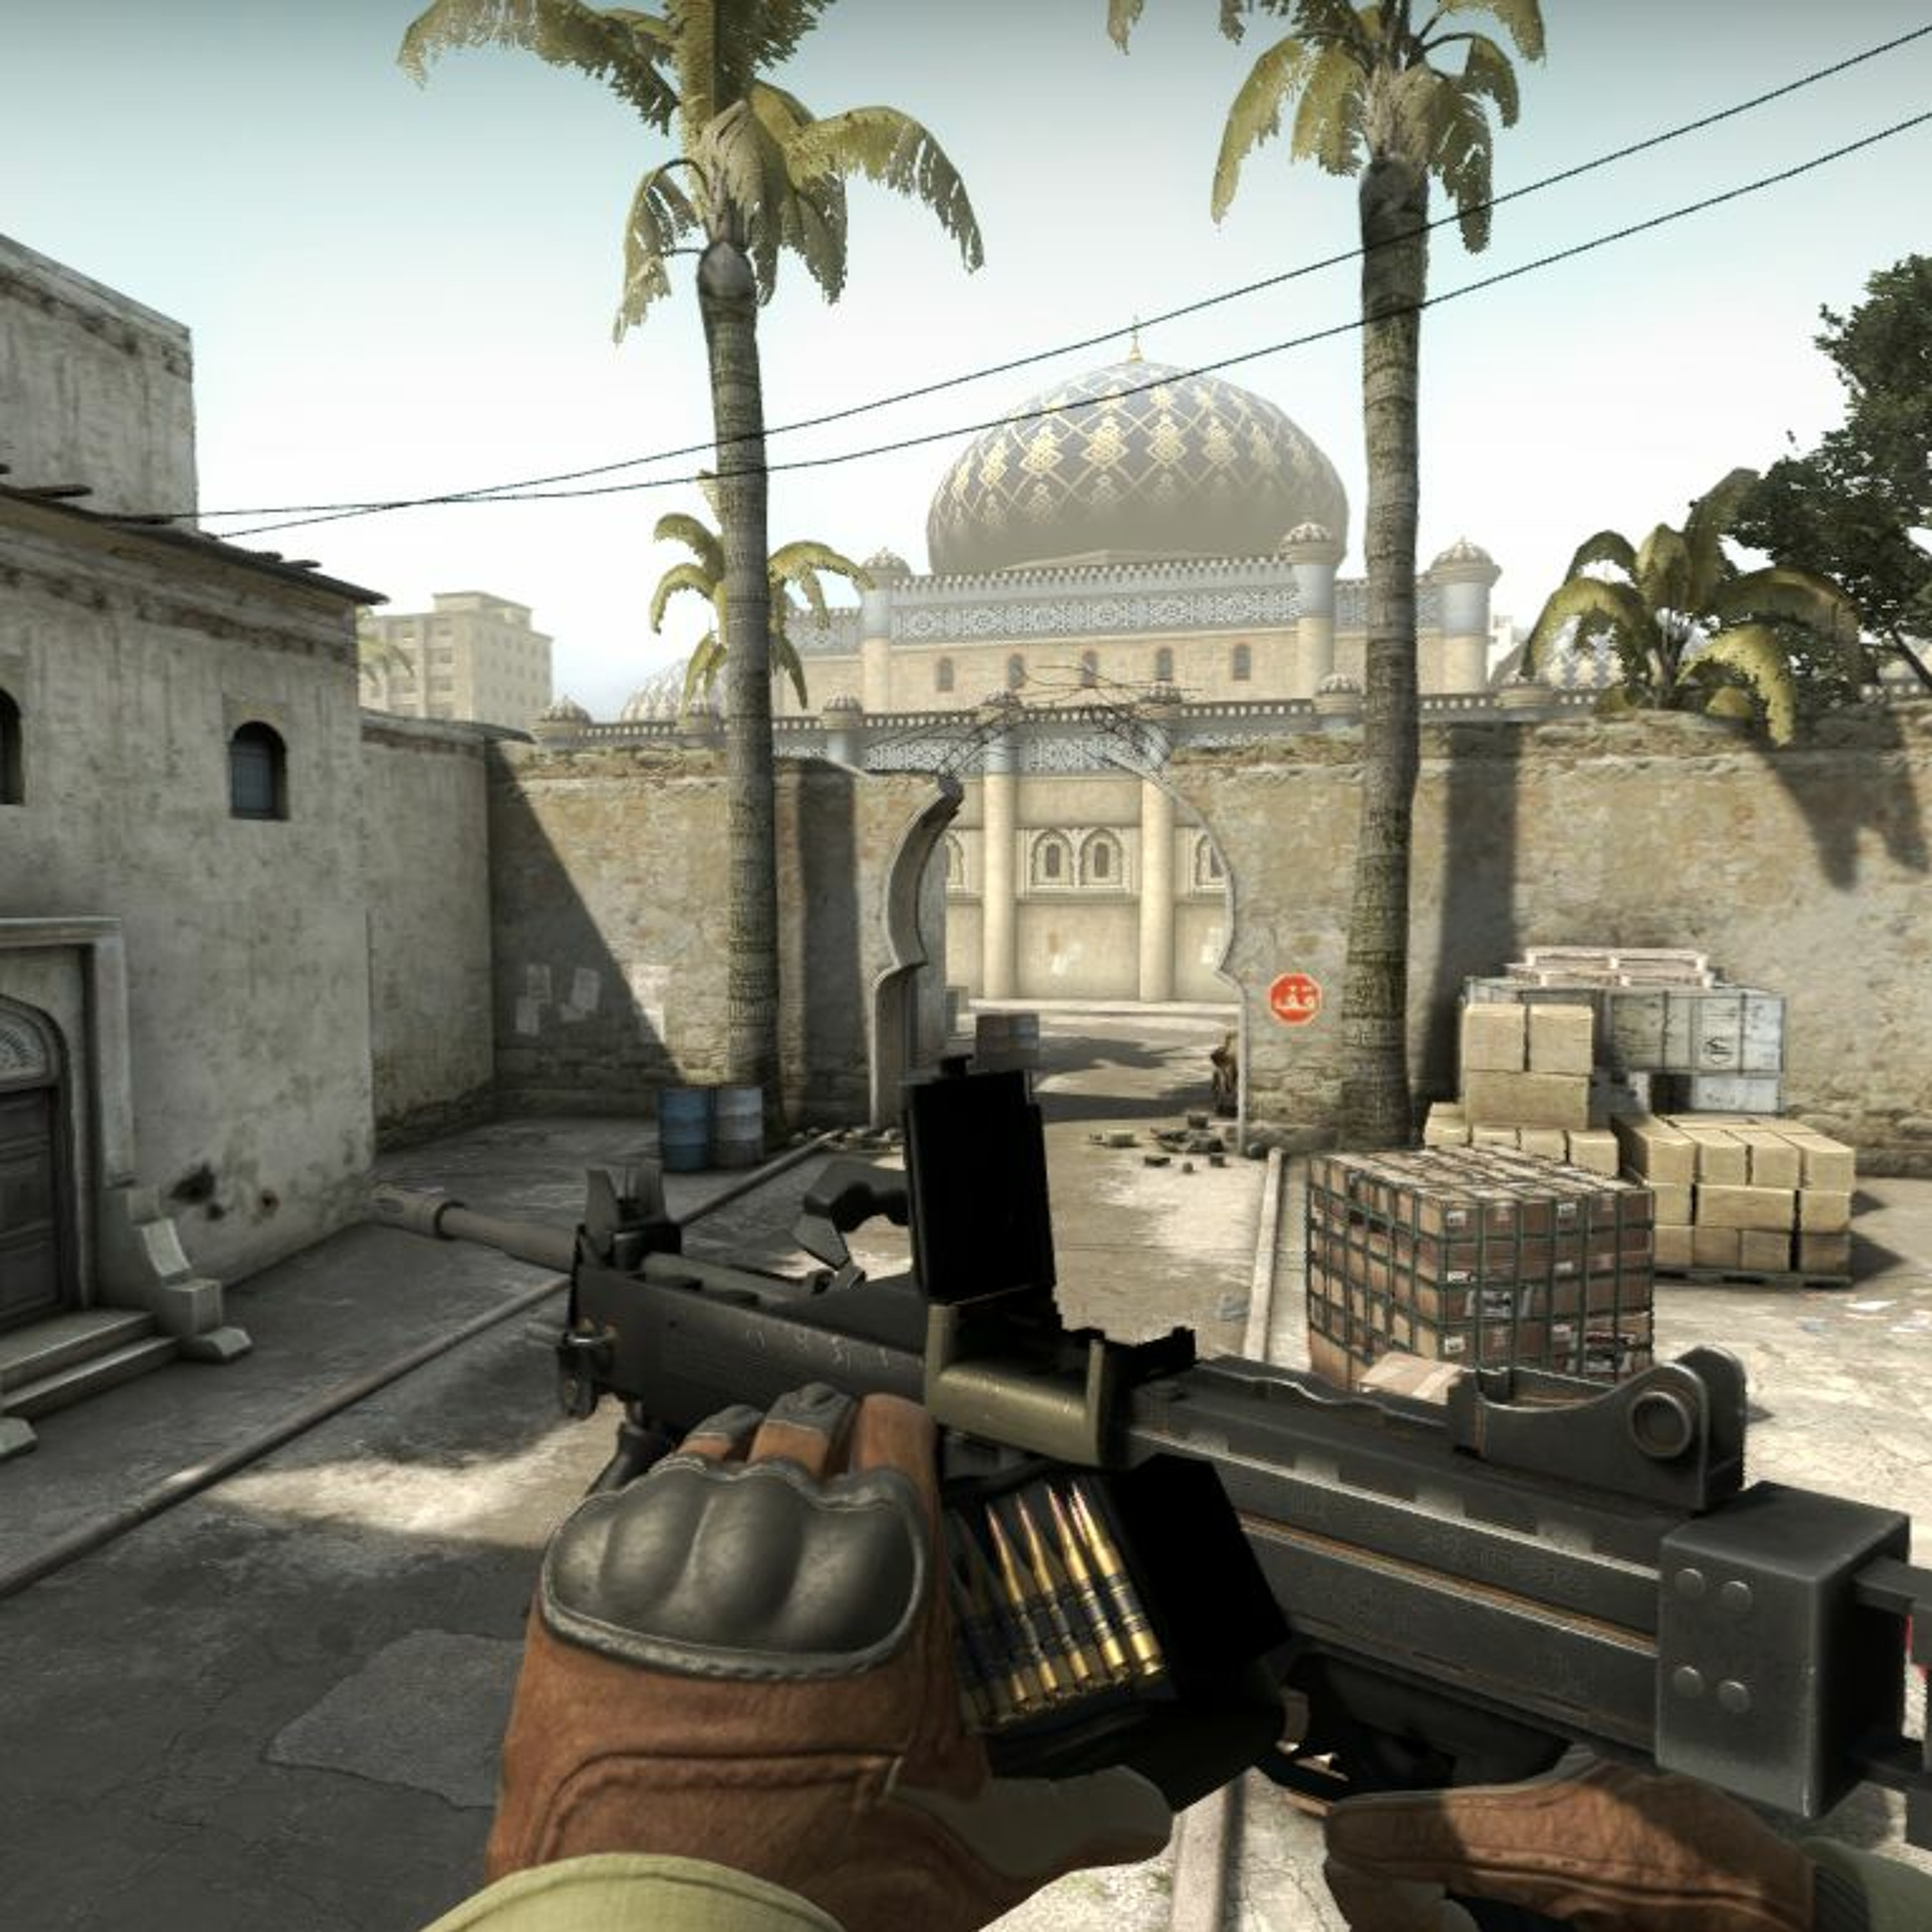 CAN THE CS:GO PROS SEE A USE FOR THE NEGEV?